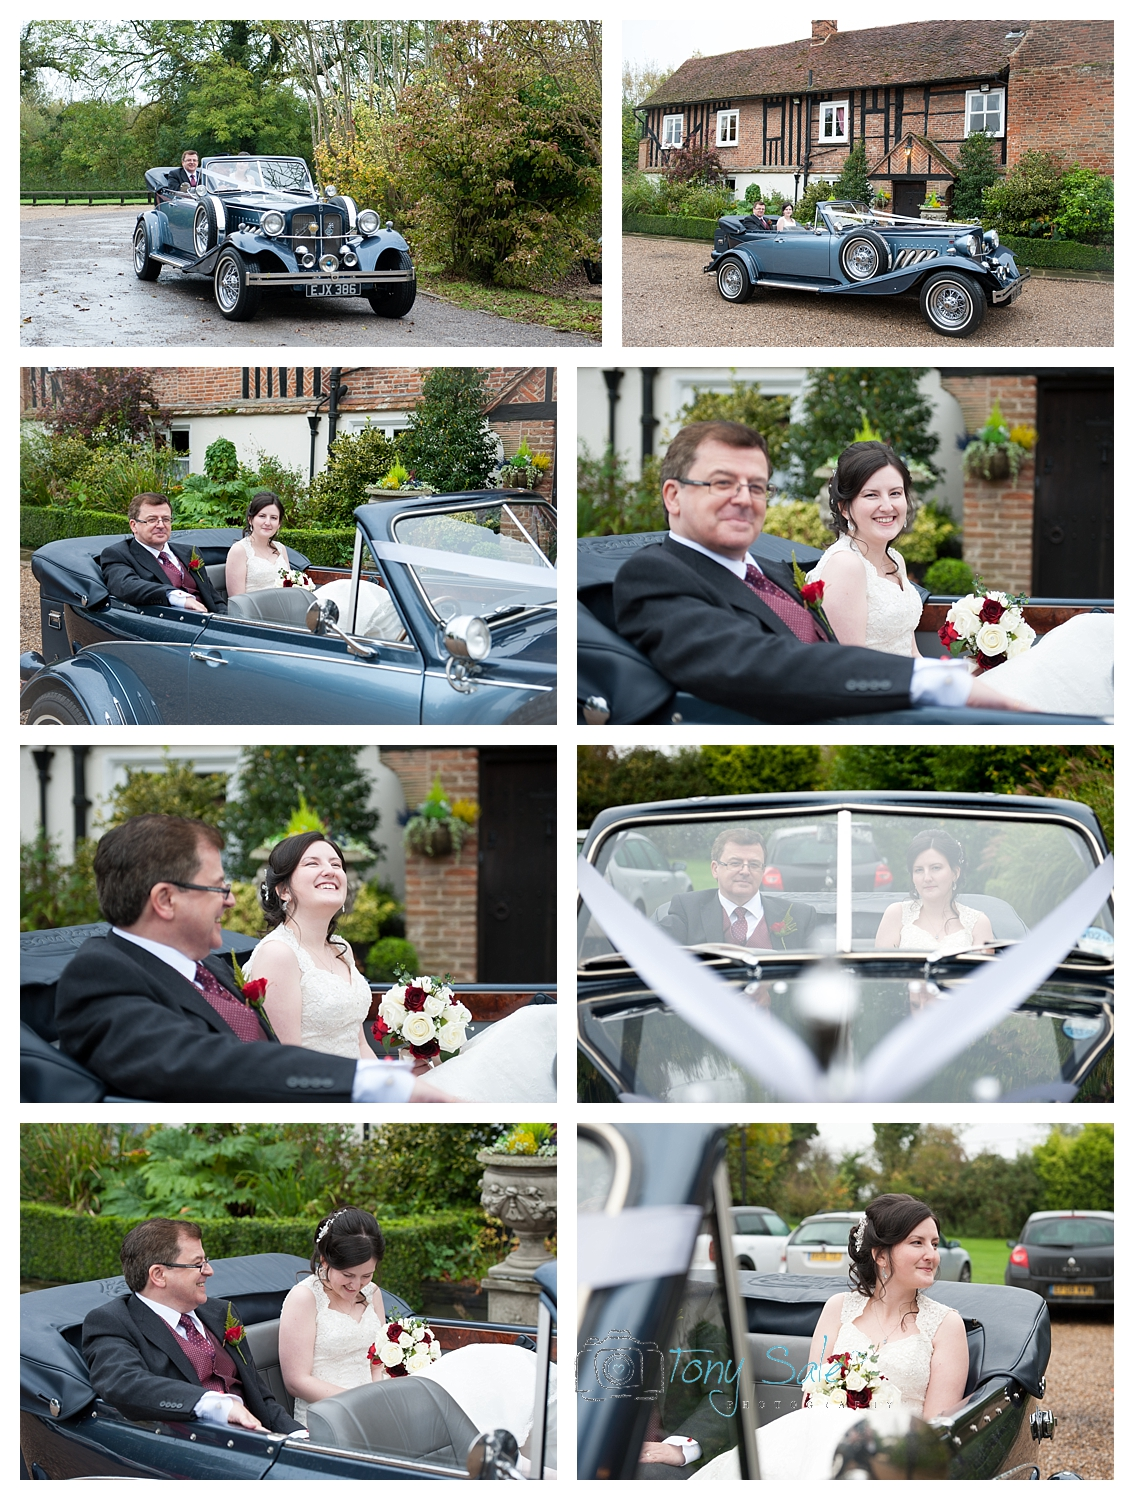 wedding-photography-newland-hall-chelmsford_007